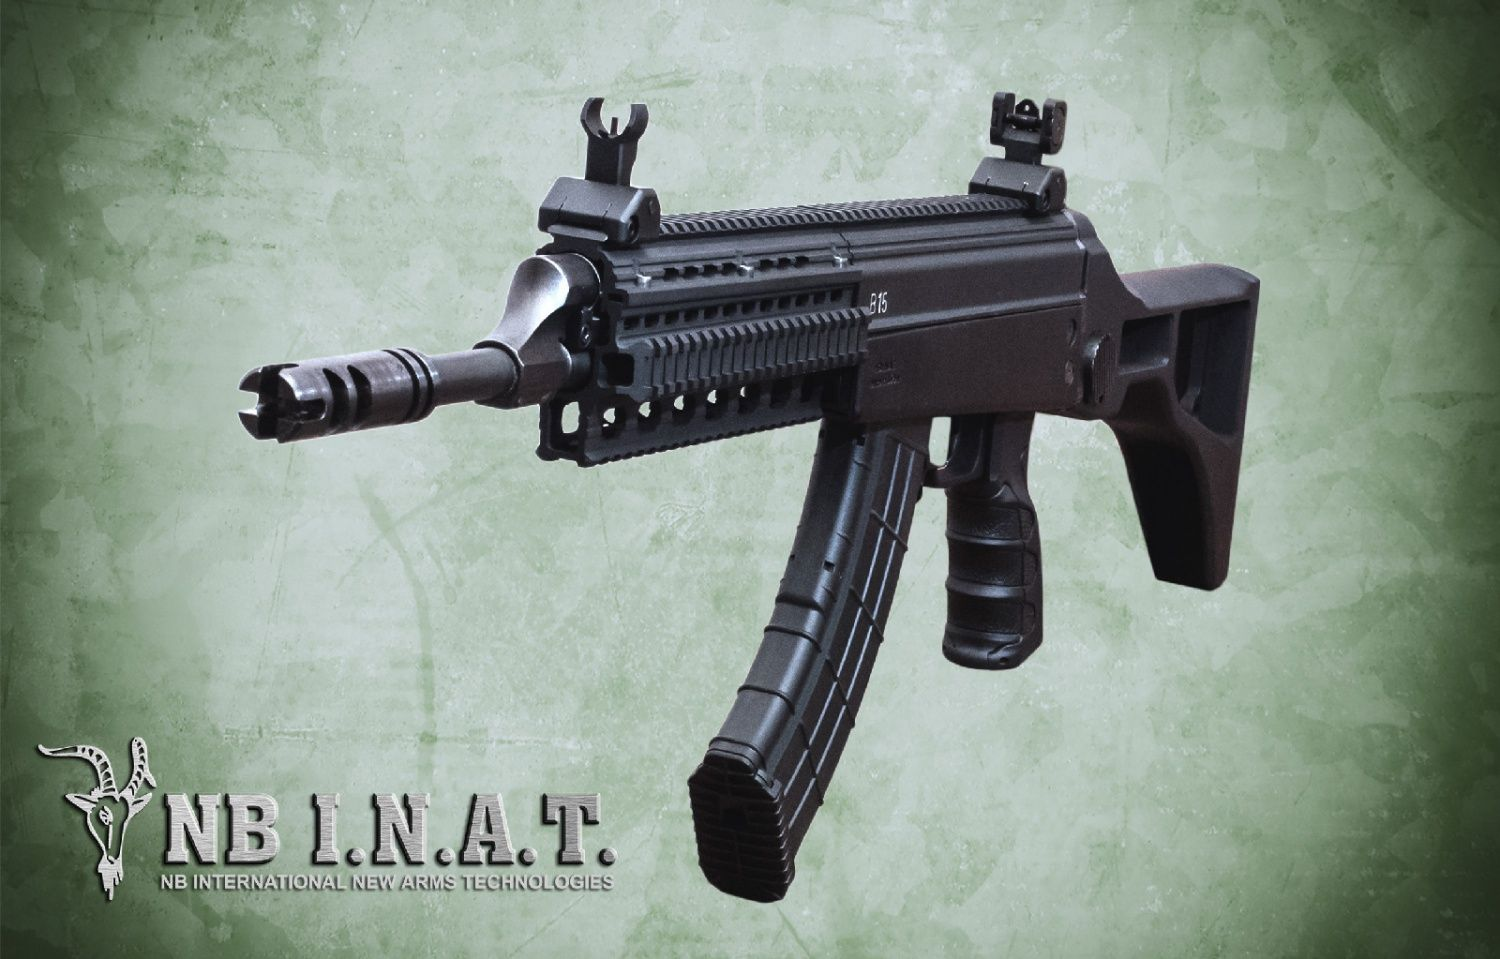 A design out of Serbia, from a company named NB International New Arms…